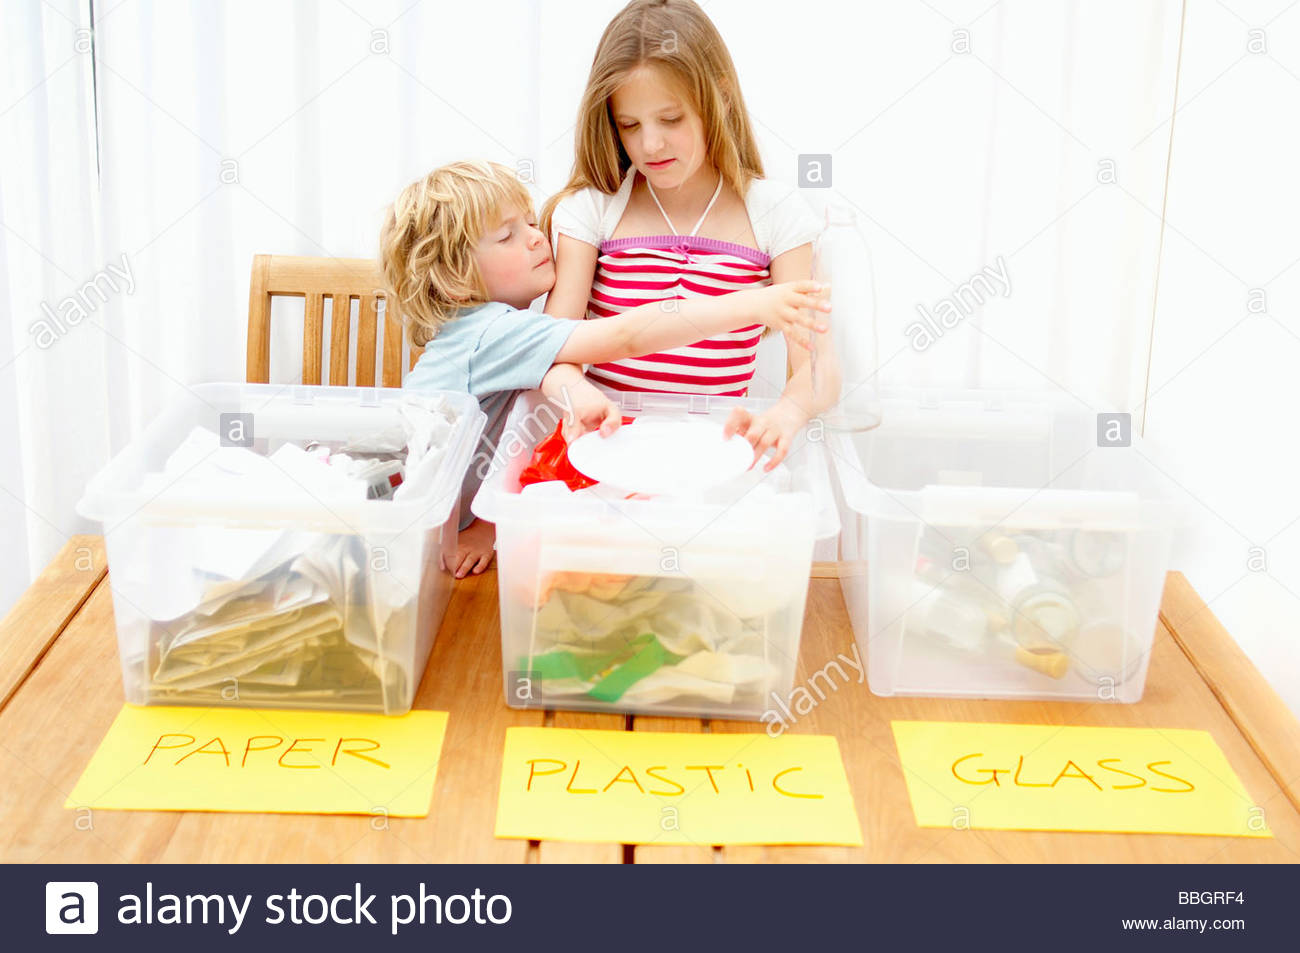 Boy and girl separating paper, plastic and glass, Den Haag, Netherlands - Stock Image